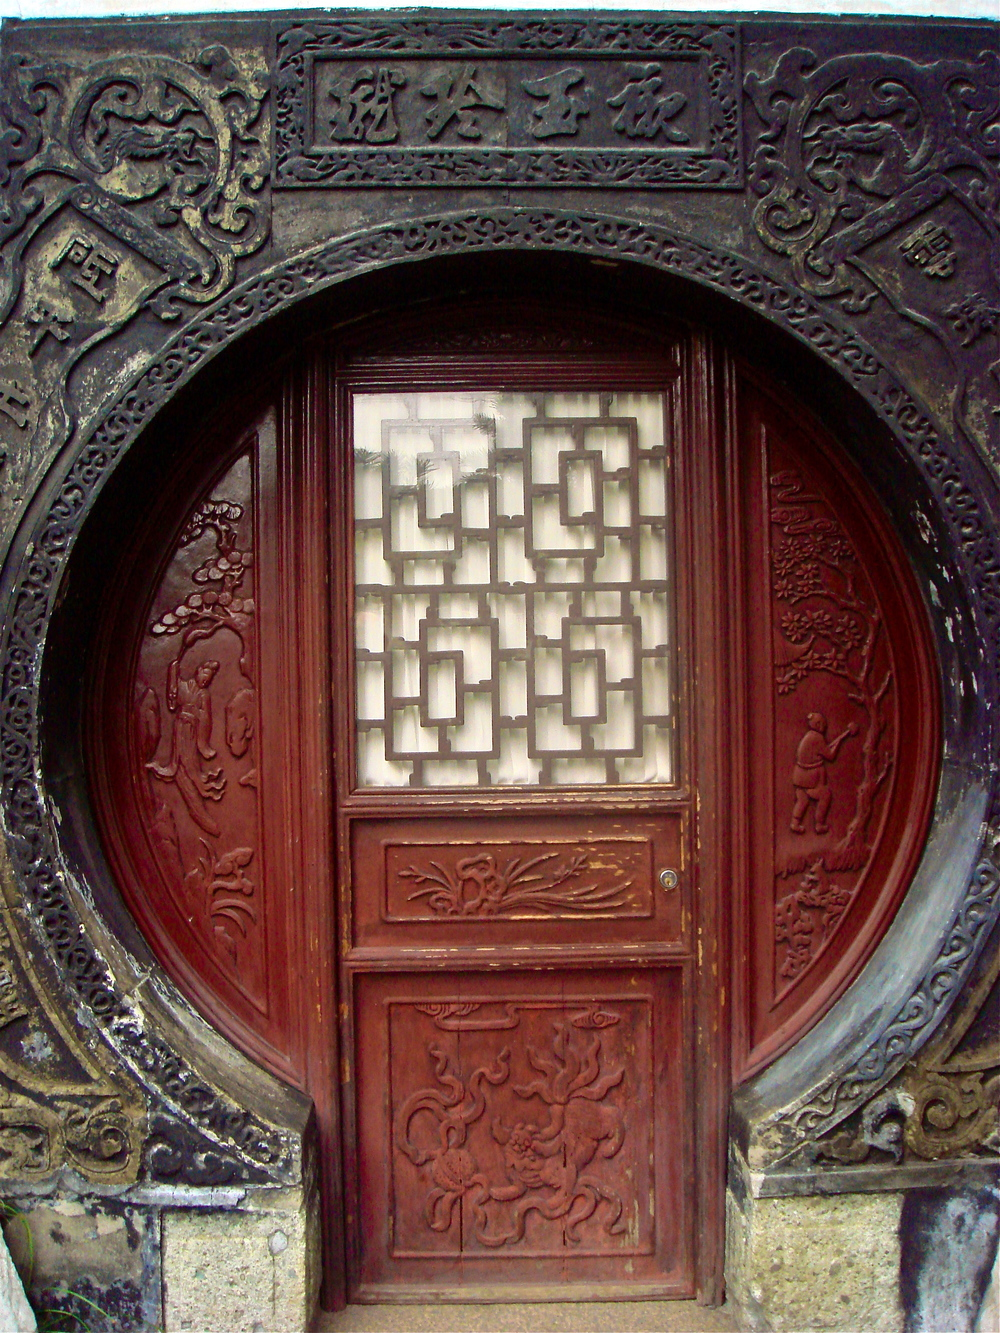 Ornate Door into a Walled Garden             Shanghai, China